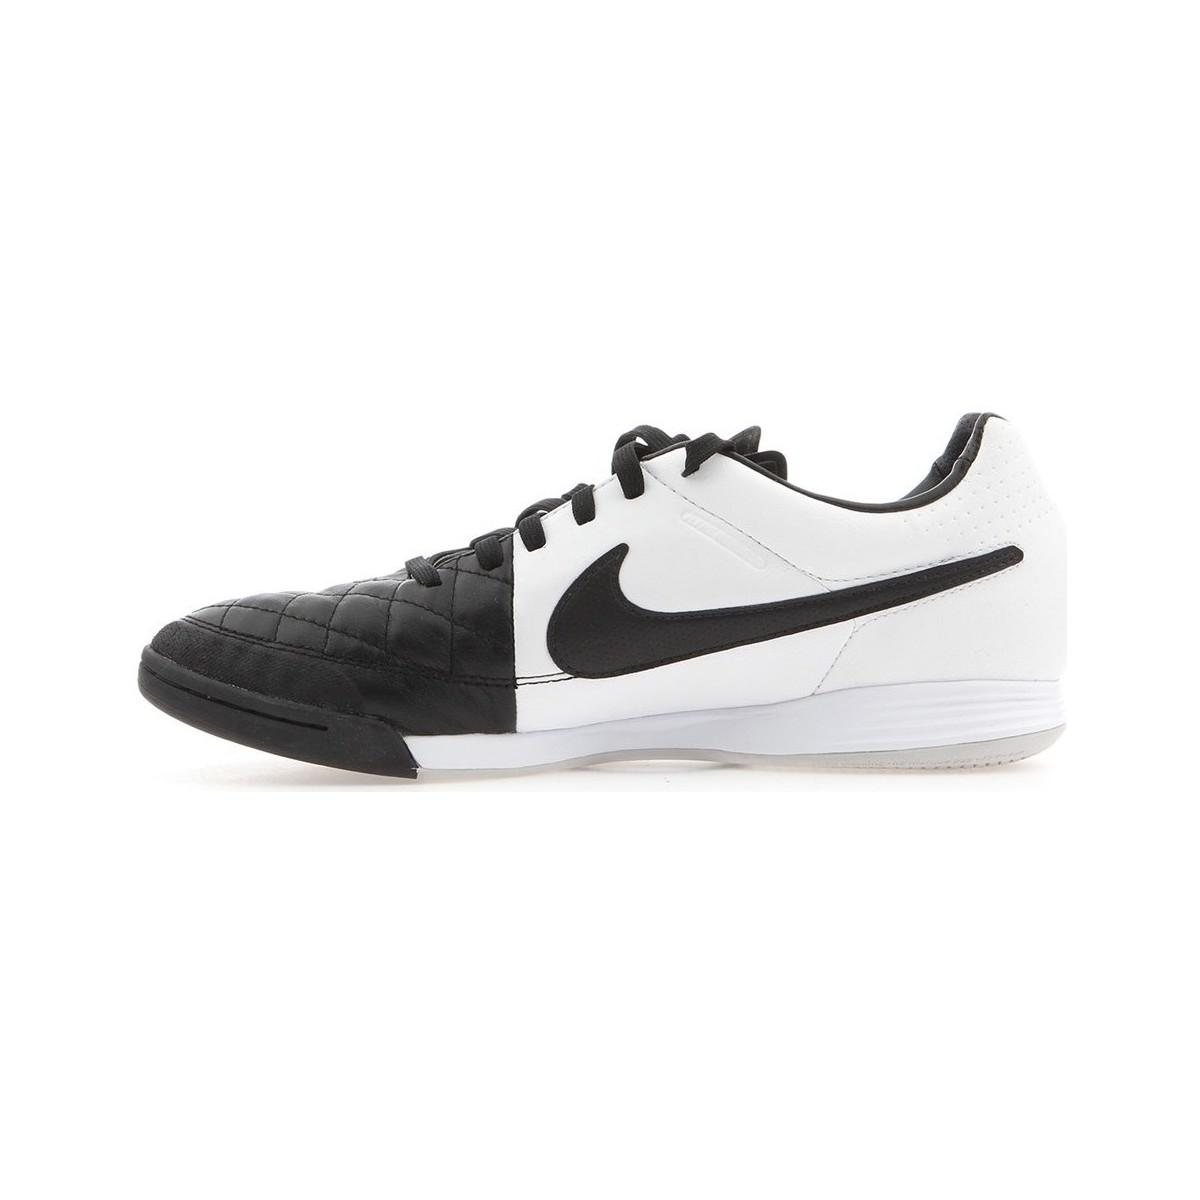 8f86403df72 Nike Tiempo Legacy Ic Men s Shoes (trainers) In White in White for ...